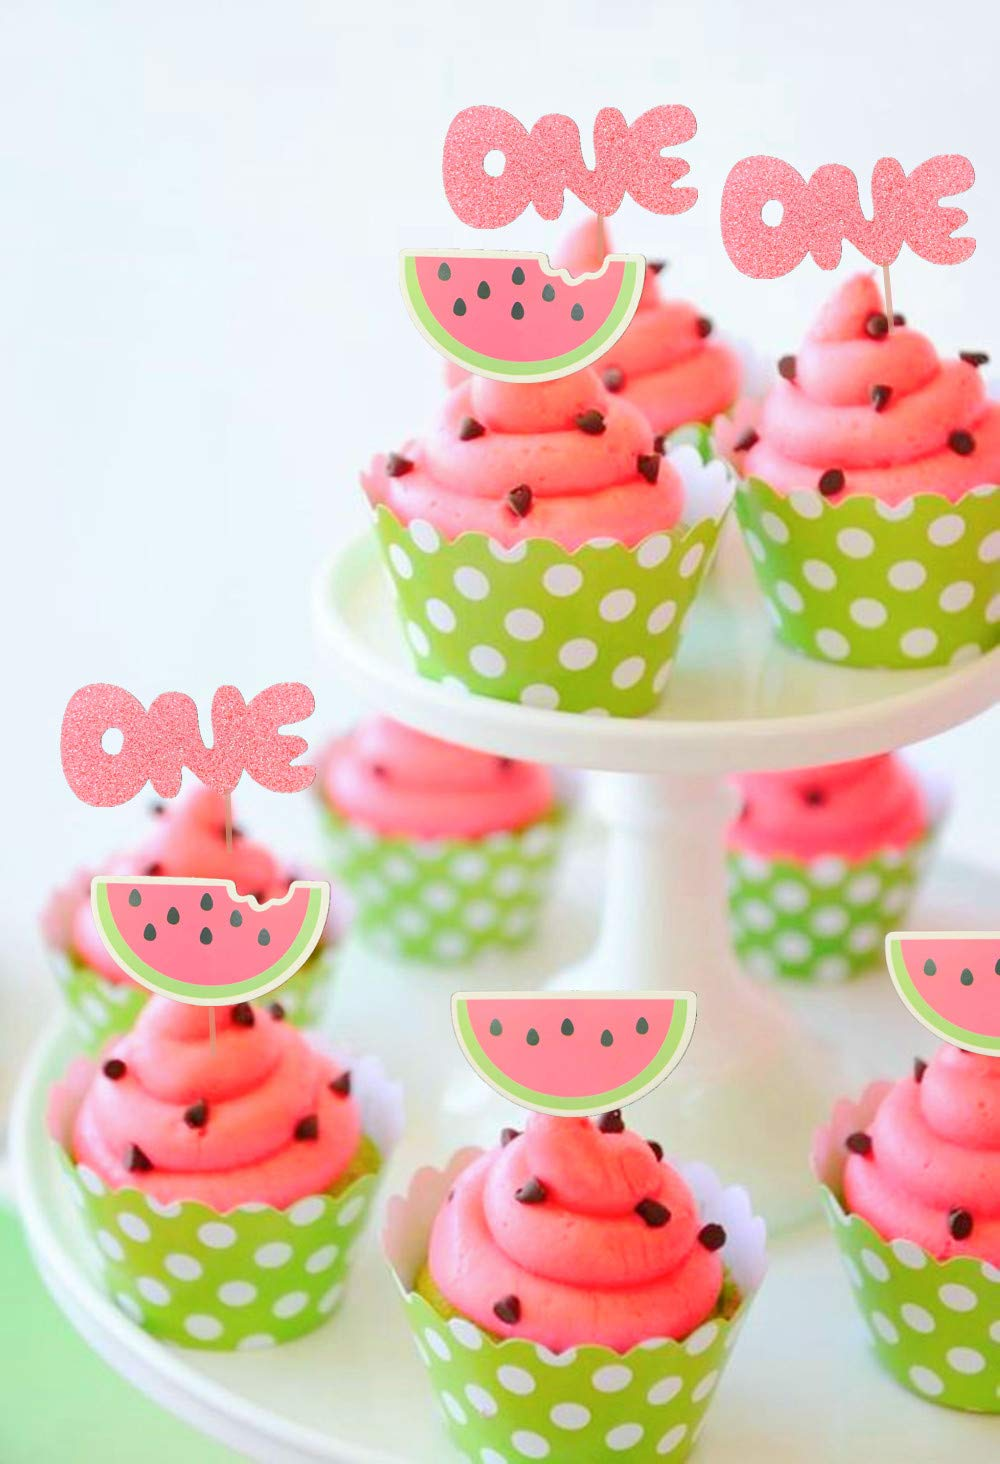 JeVenis Set of 25 Watermelon Cupcake Topper Watermelon One Cupcake Topper Baby Girl First Birthday Cupcake Topper by JeVenis (Image #2)